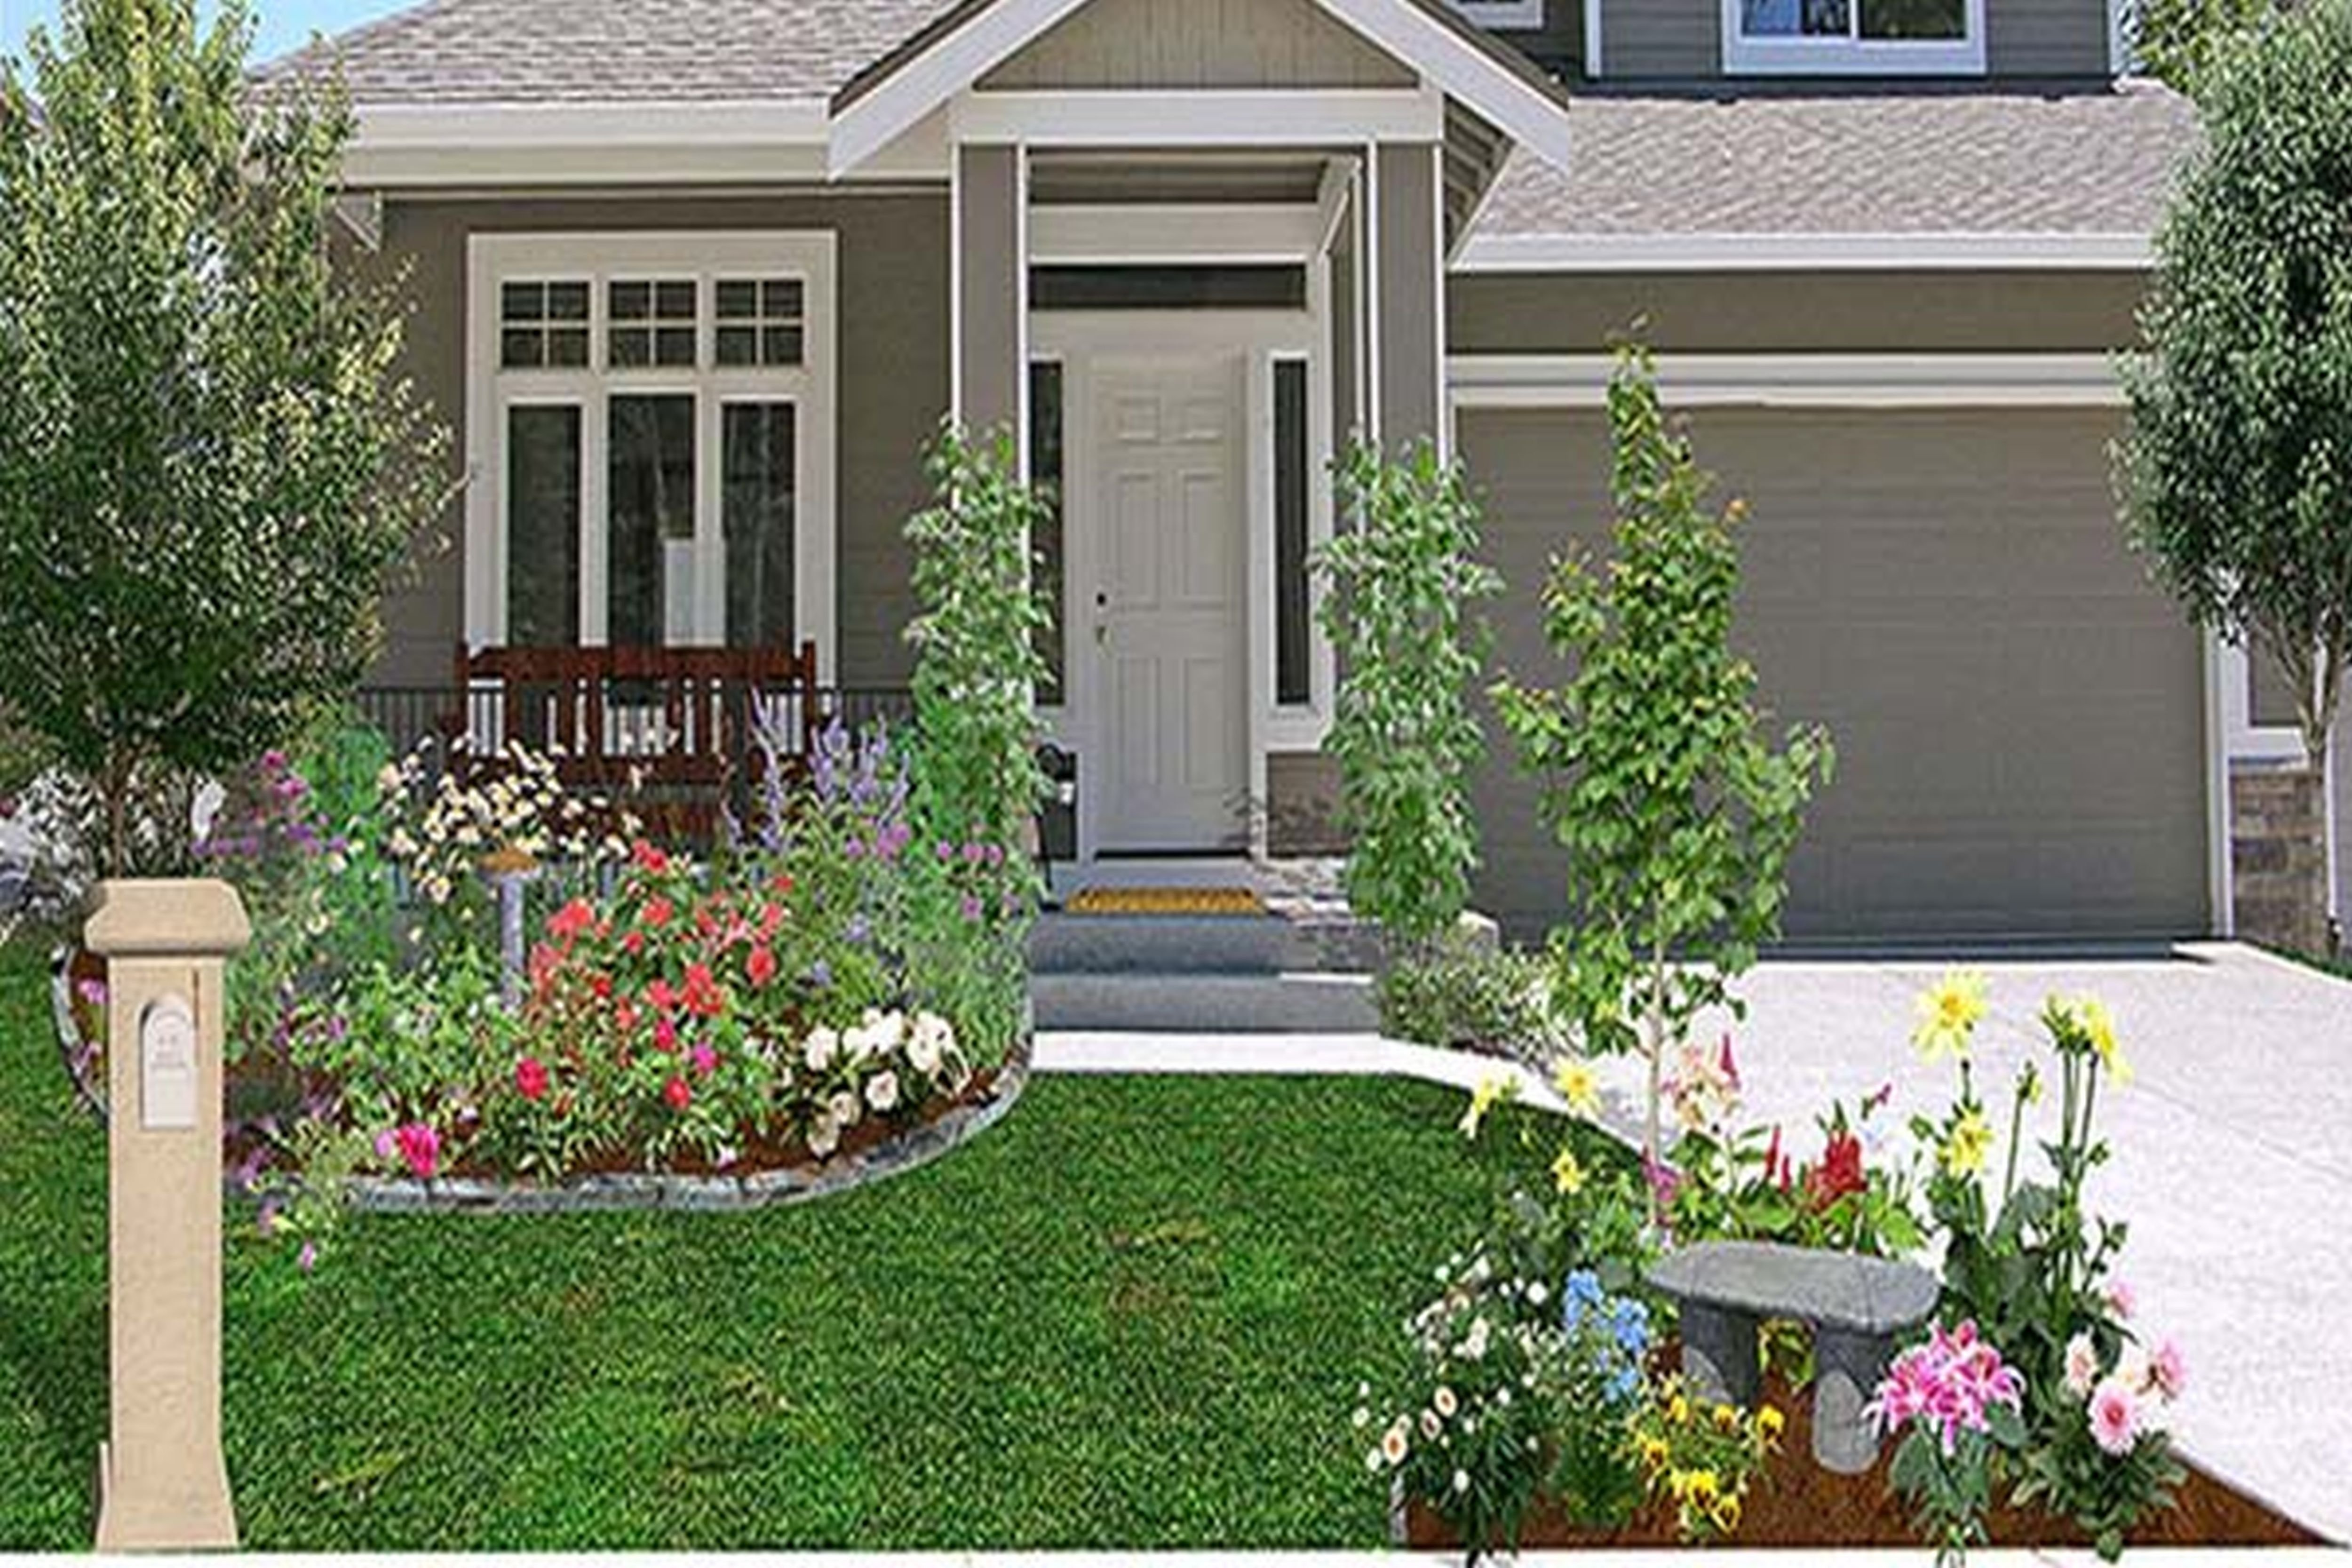 10 Spectacular Front Yard Landscaping Ideas On A Budget cheap landscaping ideas for front yard amys office greenvirals style 5 2020